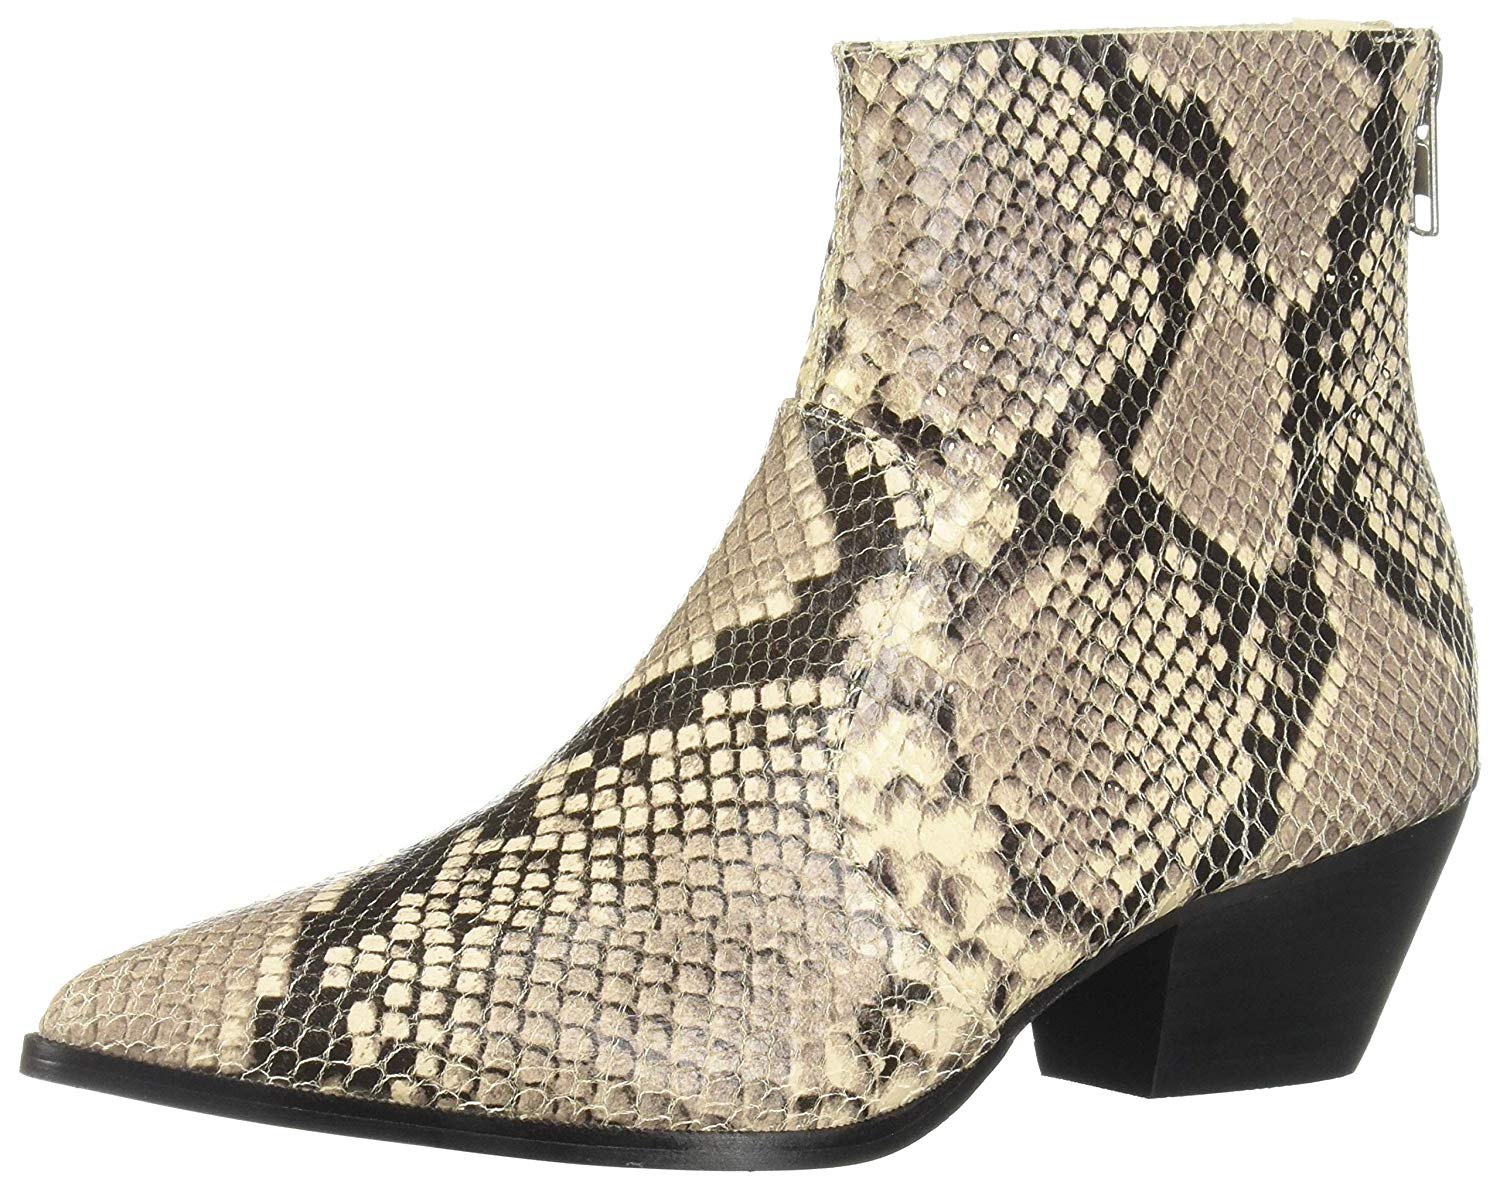 97b71f71d94 Details about Steve Madden Women's Café Western Boot, Natural Snake, Size  7.0 c7AD